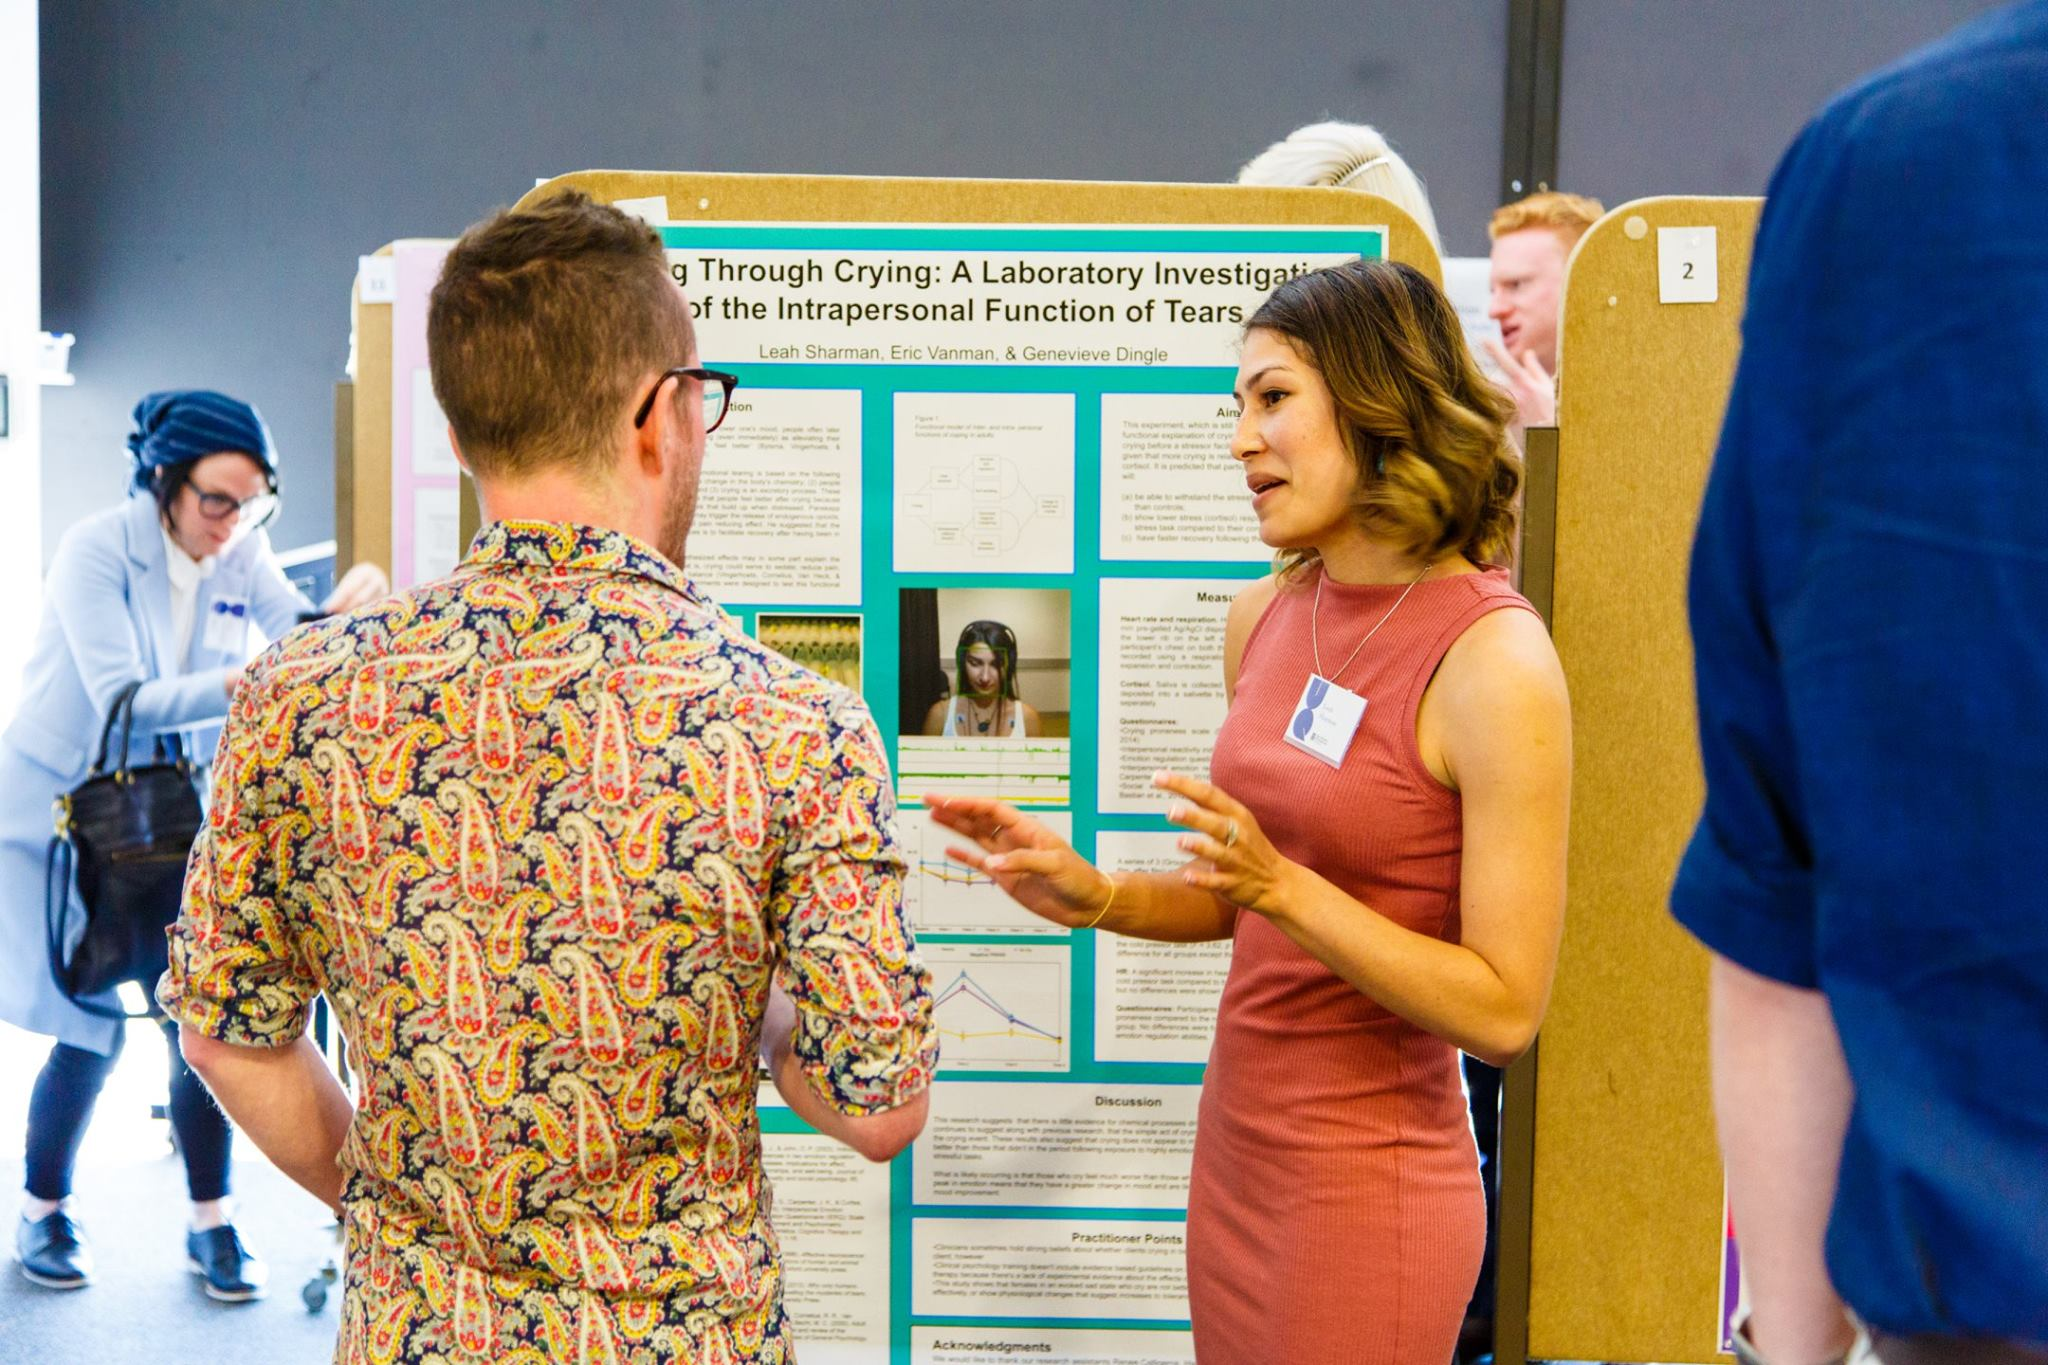 Leah presents her recent research on crying.